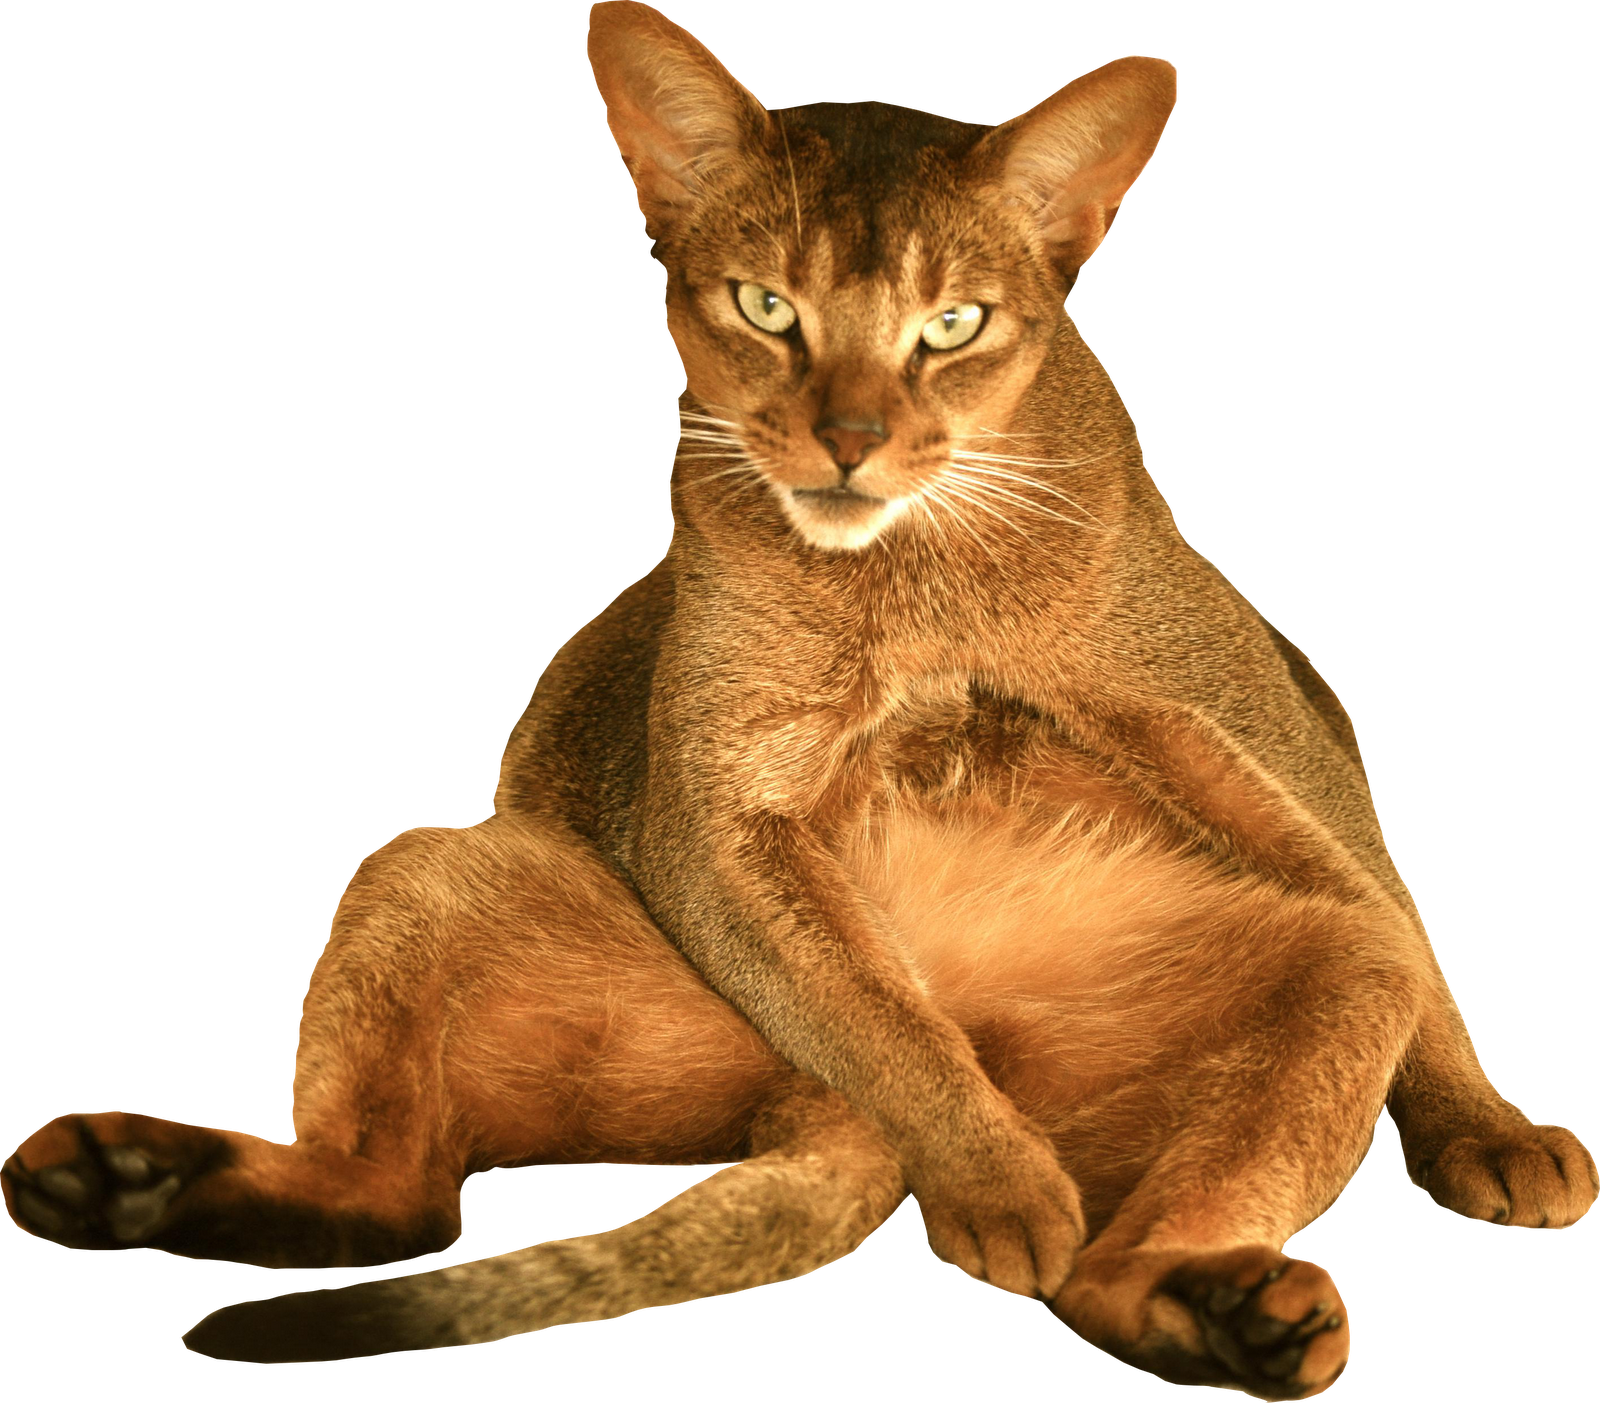 Funny cats png. Free cat images digital